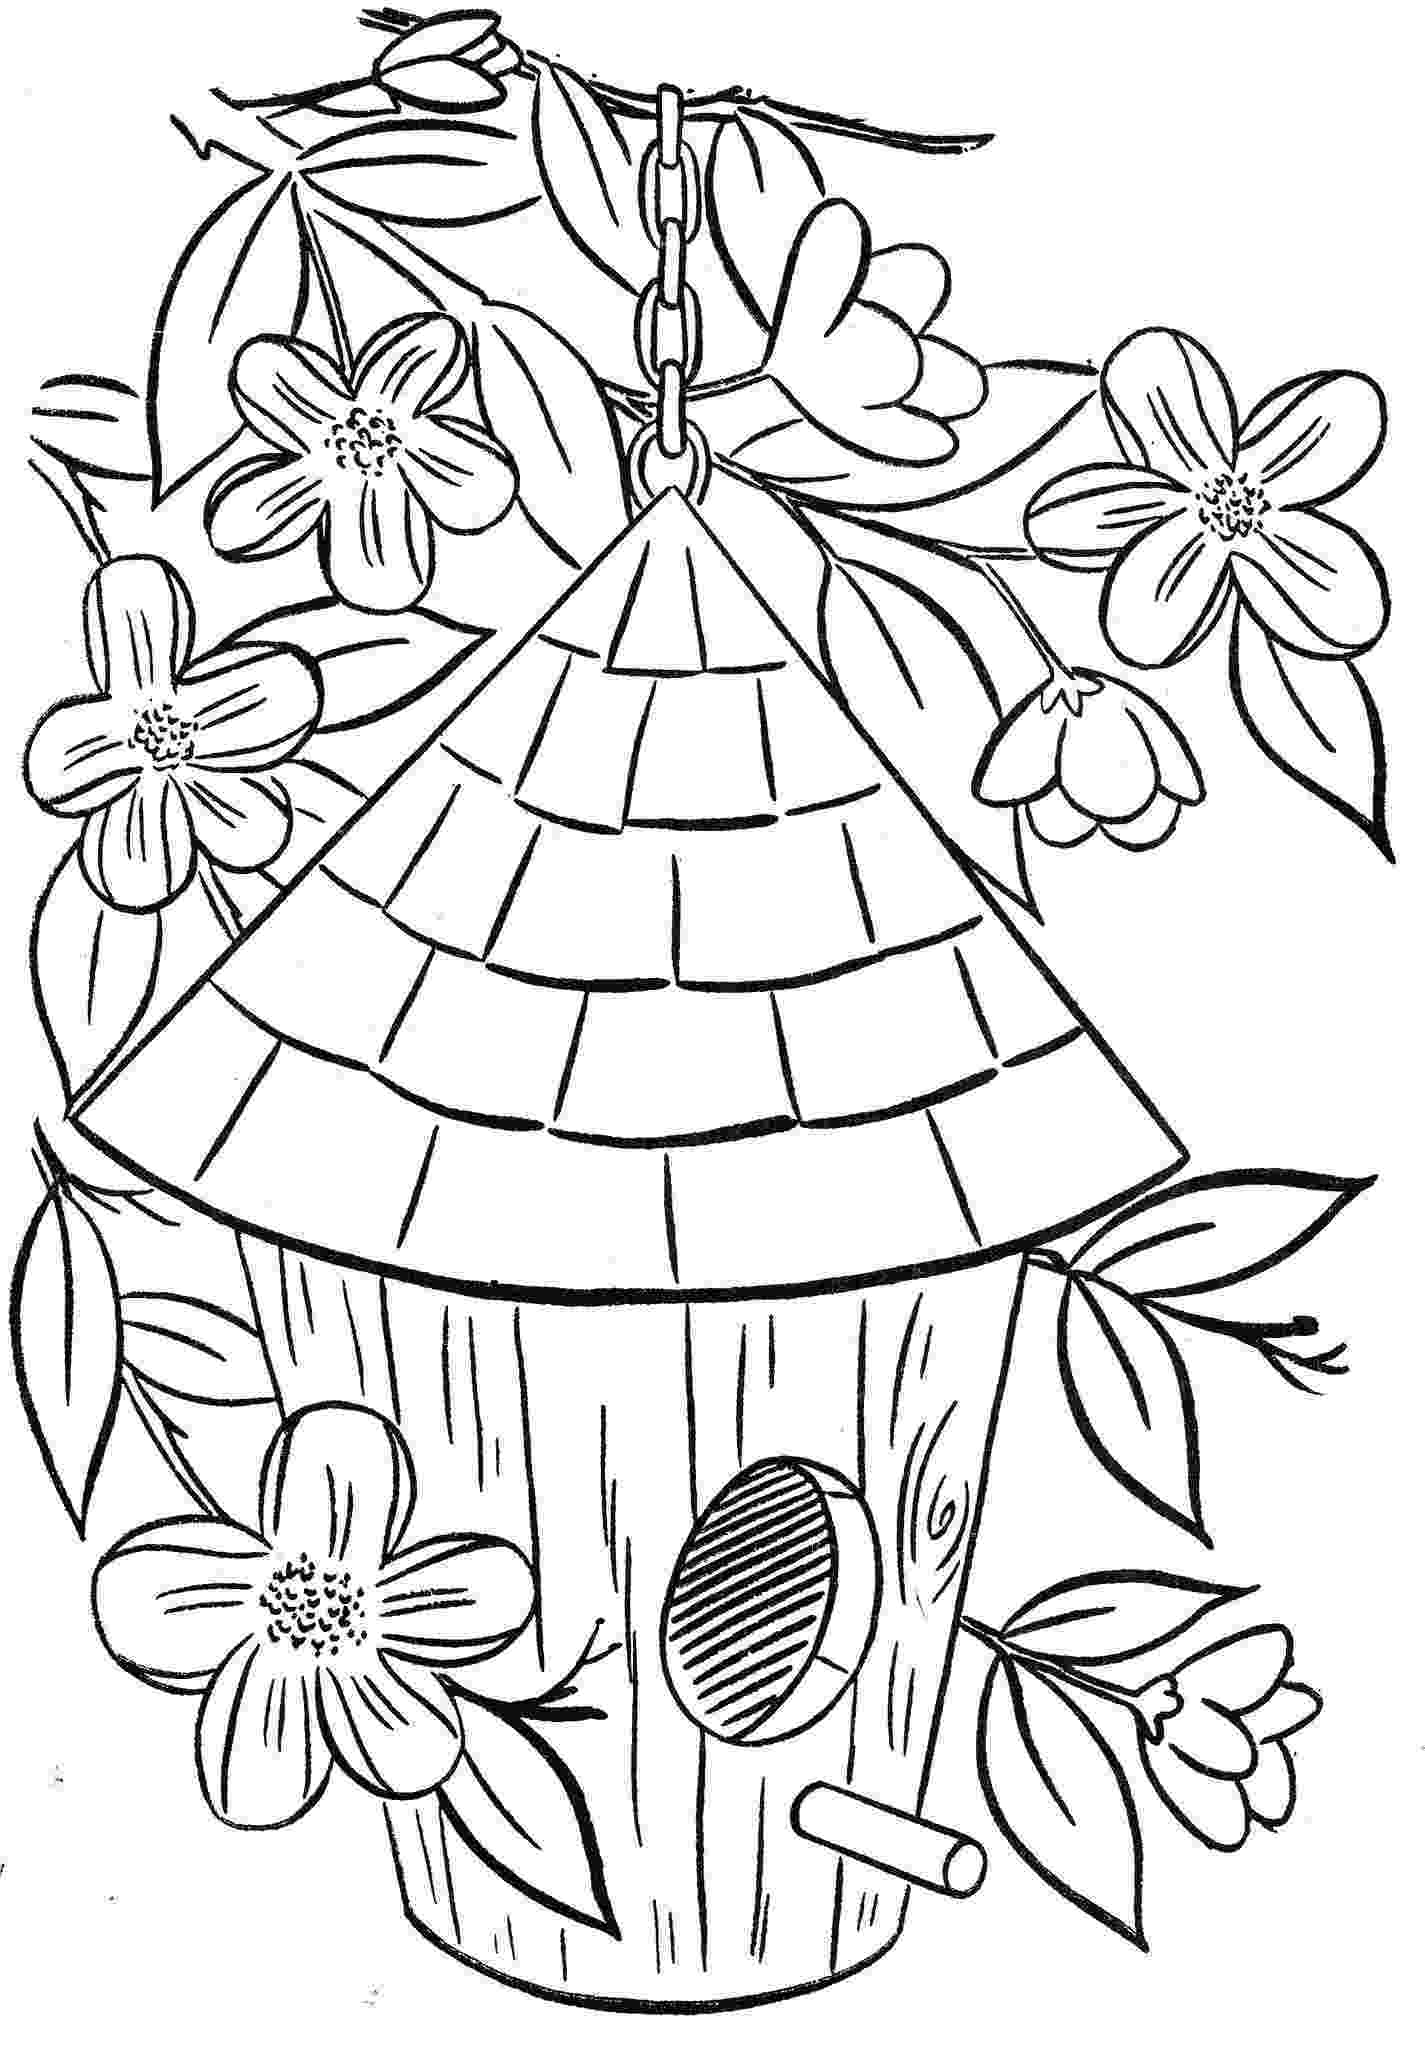 black and white coloring pages for adults bonnie a book to color cards pinterest books for coloring black adults pages and white